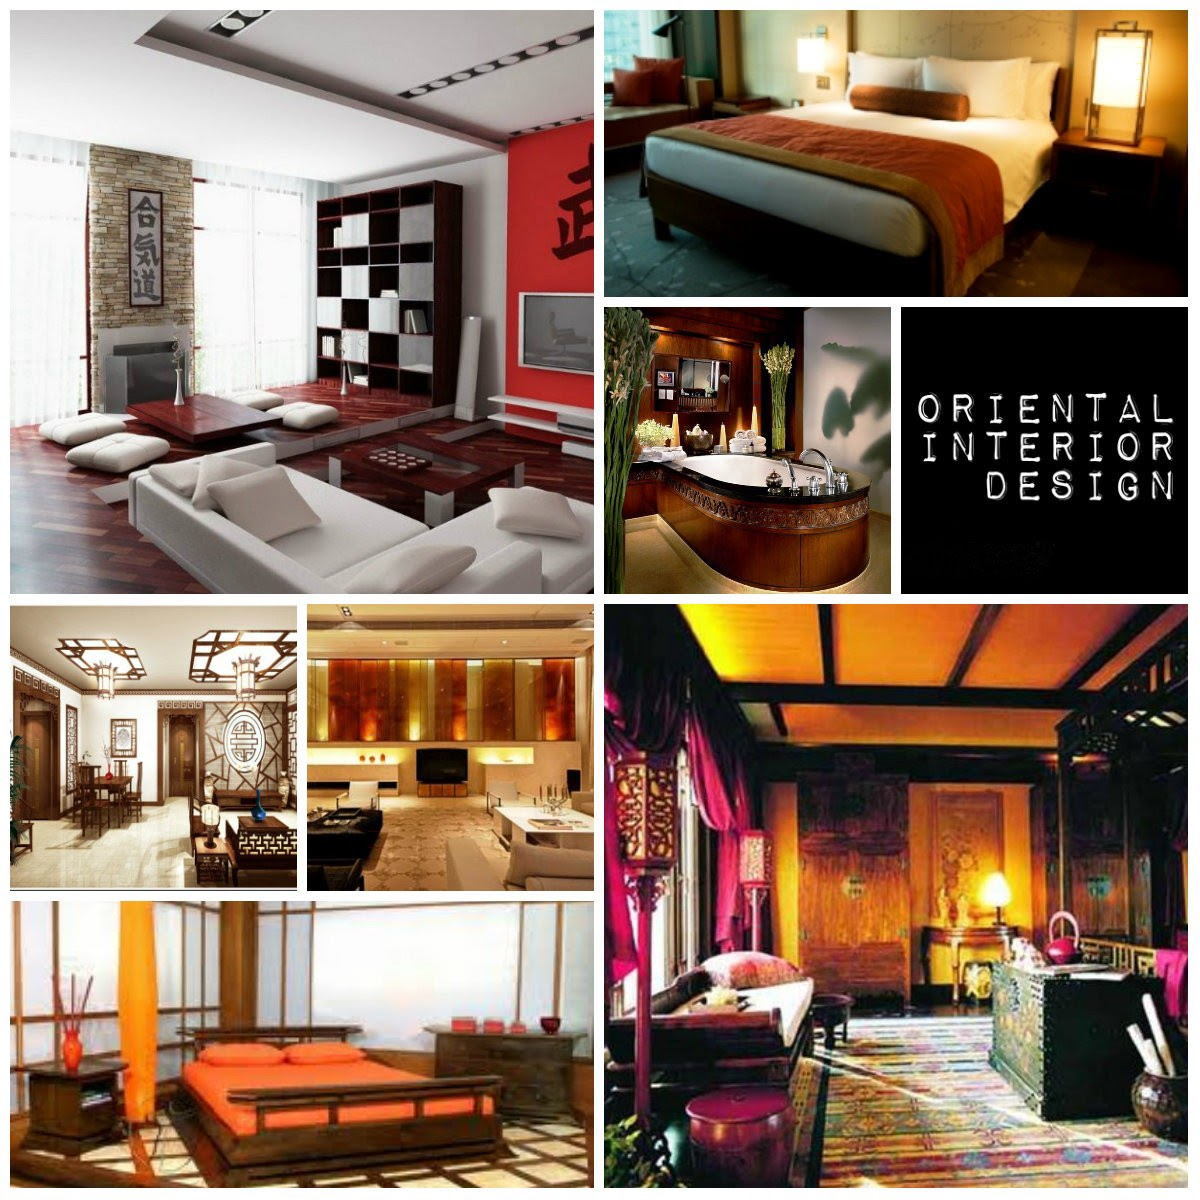 Different Interior Design Styles Research  The World According To Me